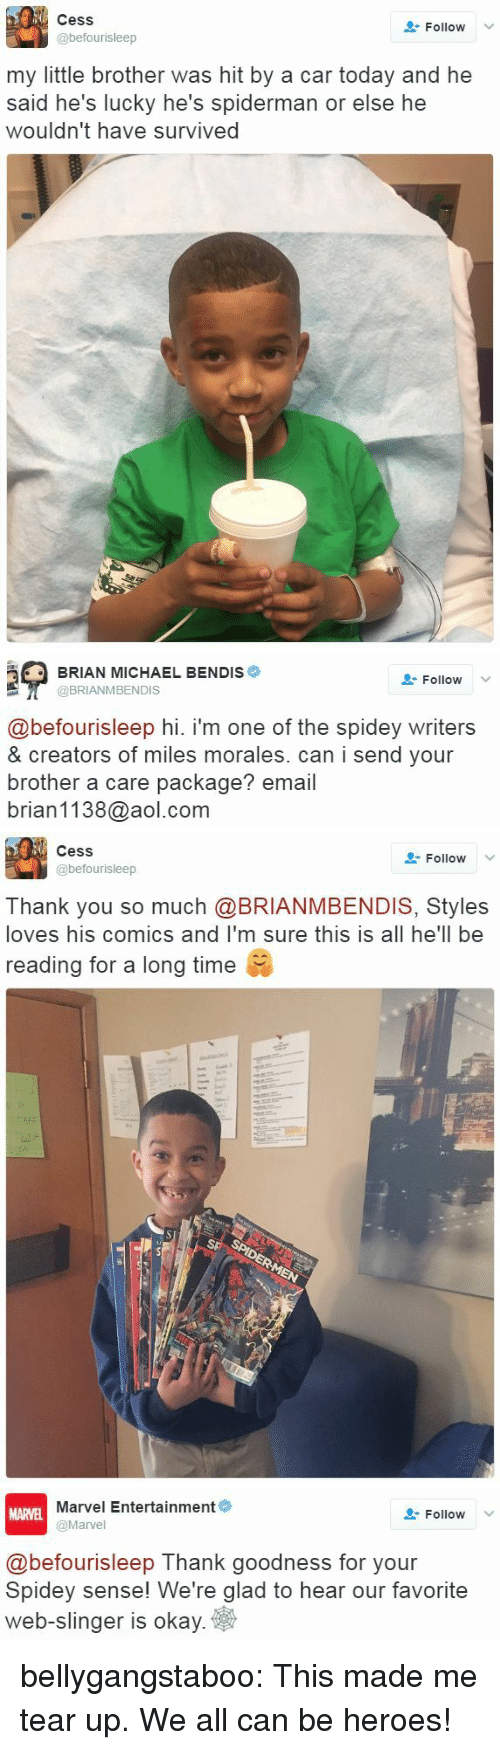 Miles Morales: Cess  @befourisleep  Follow  my little brother was hit by a car today and he  said he's lucky he's spiderman or else he  wouldn't have survived   BRIAN MICHAEL BENDIS*  @BRIANMBENDIS  Follow  @befourisleep hi. i'm one of the spidey writers  & creators of miles morales. can i send your  brother a care package? email  brian1138@aol.com   Cess  @befourisleep  Follow  Thank you so much @BRIANMBENDIS, Styles  loves his comics and I'm sure this is all he'll be  reading for a long time   Marvel Entertainment  @Marvel  MARVEL  Follow  @befourisleep Thank goodness for your  Spidey sense! We're glad to hear our favorite  web-slinger is okay  ето и  ank goodness for vour bellygangstaboo:  This made me tear up.    We all can be heroes!